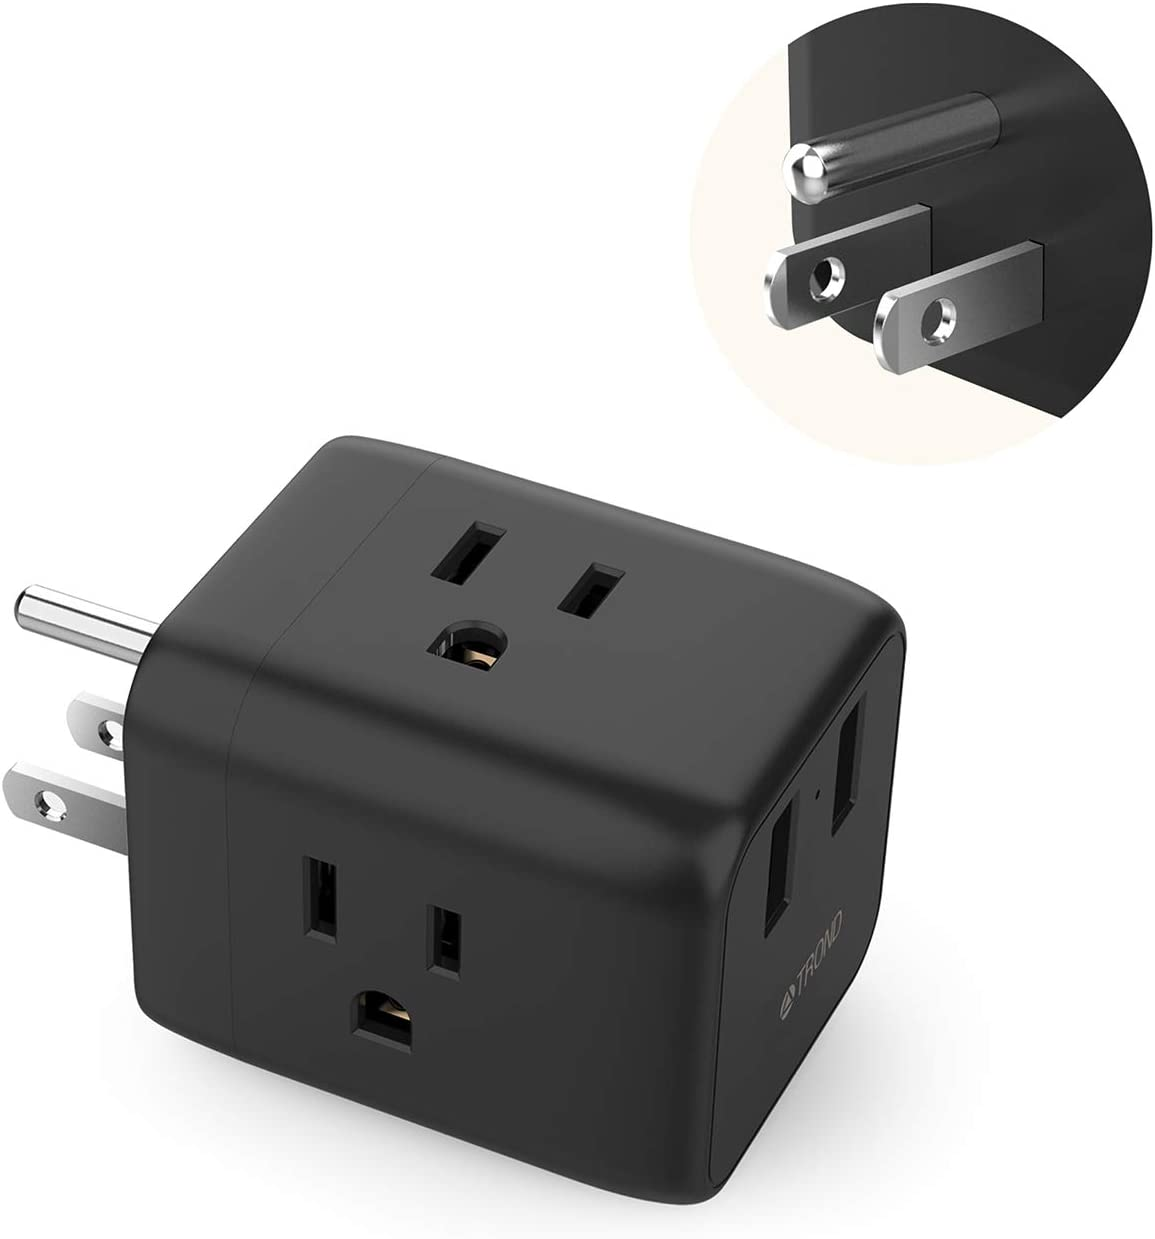 2x2 Smart USB Port Charger 3 Outlet Wall Adapter Socket AC Power Surge Protector